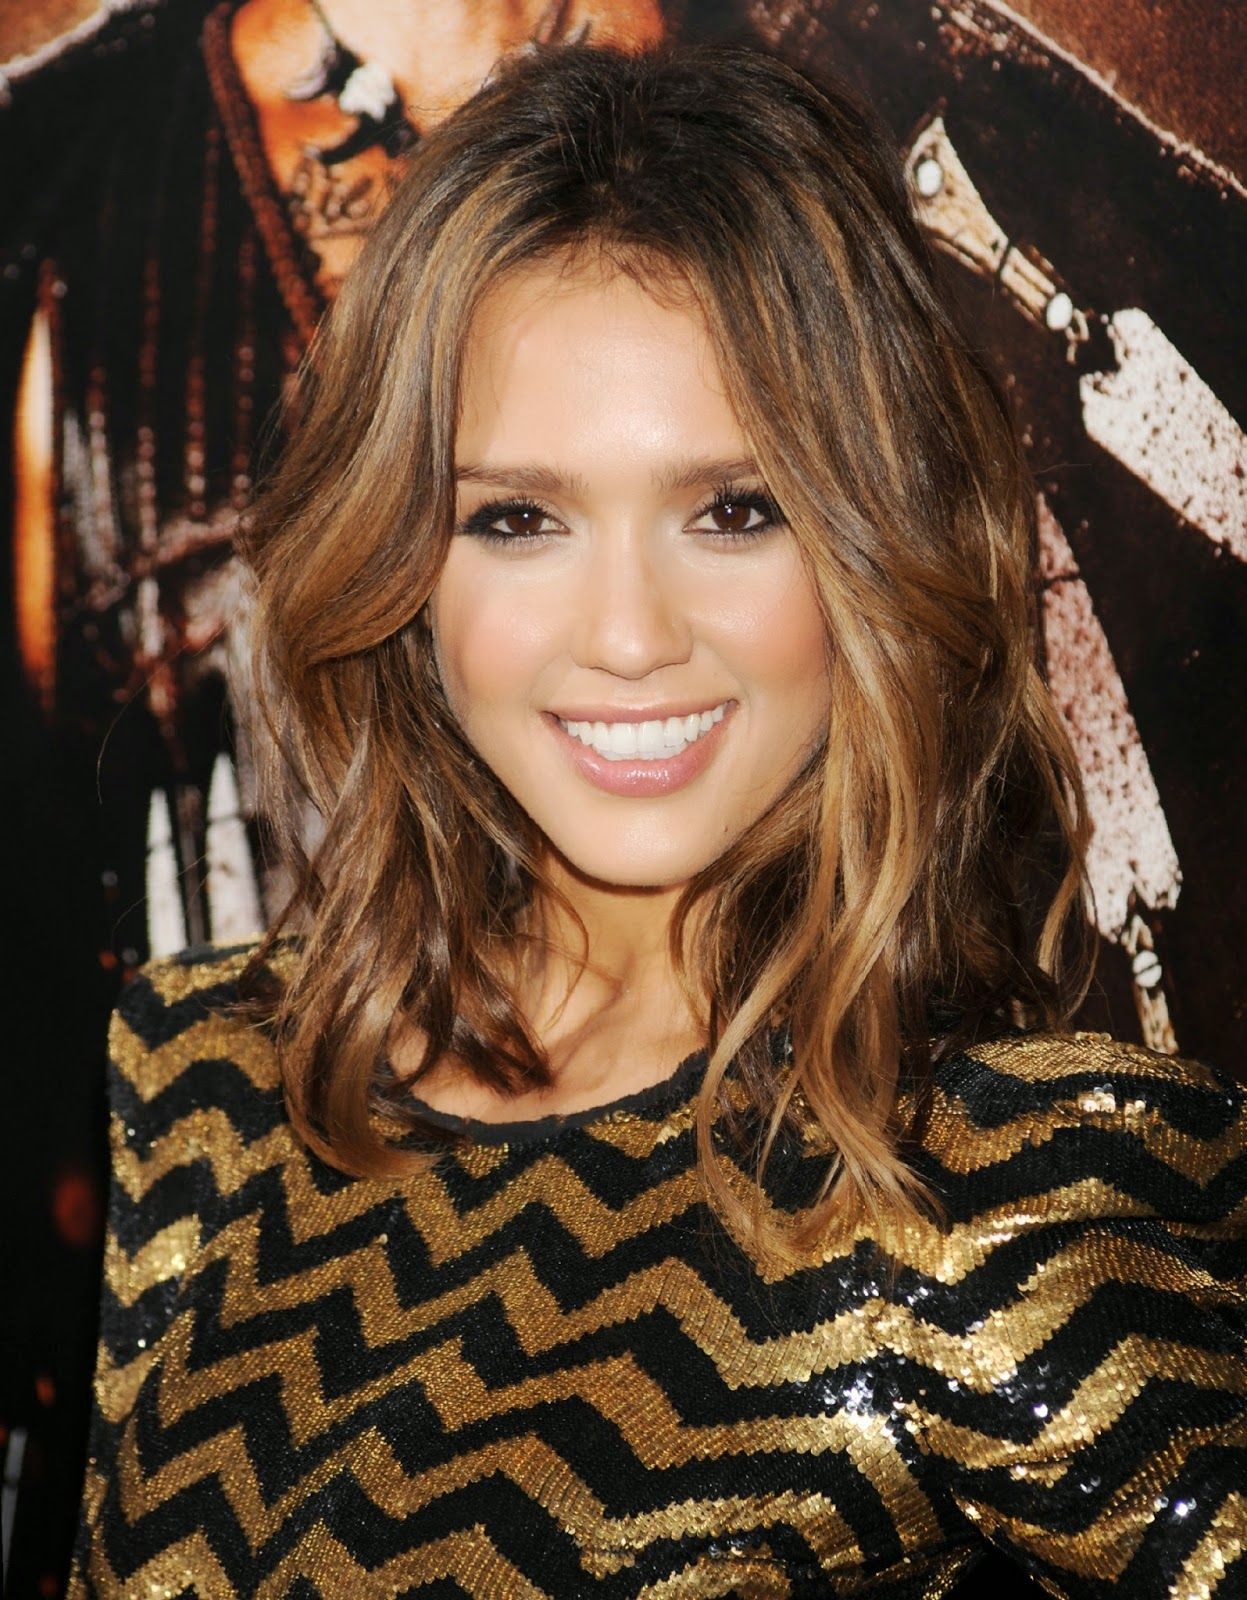 1000+ images about Bronde on Pinterest